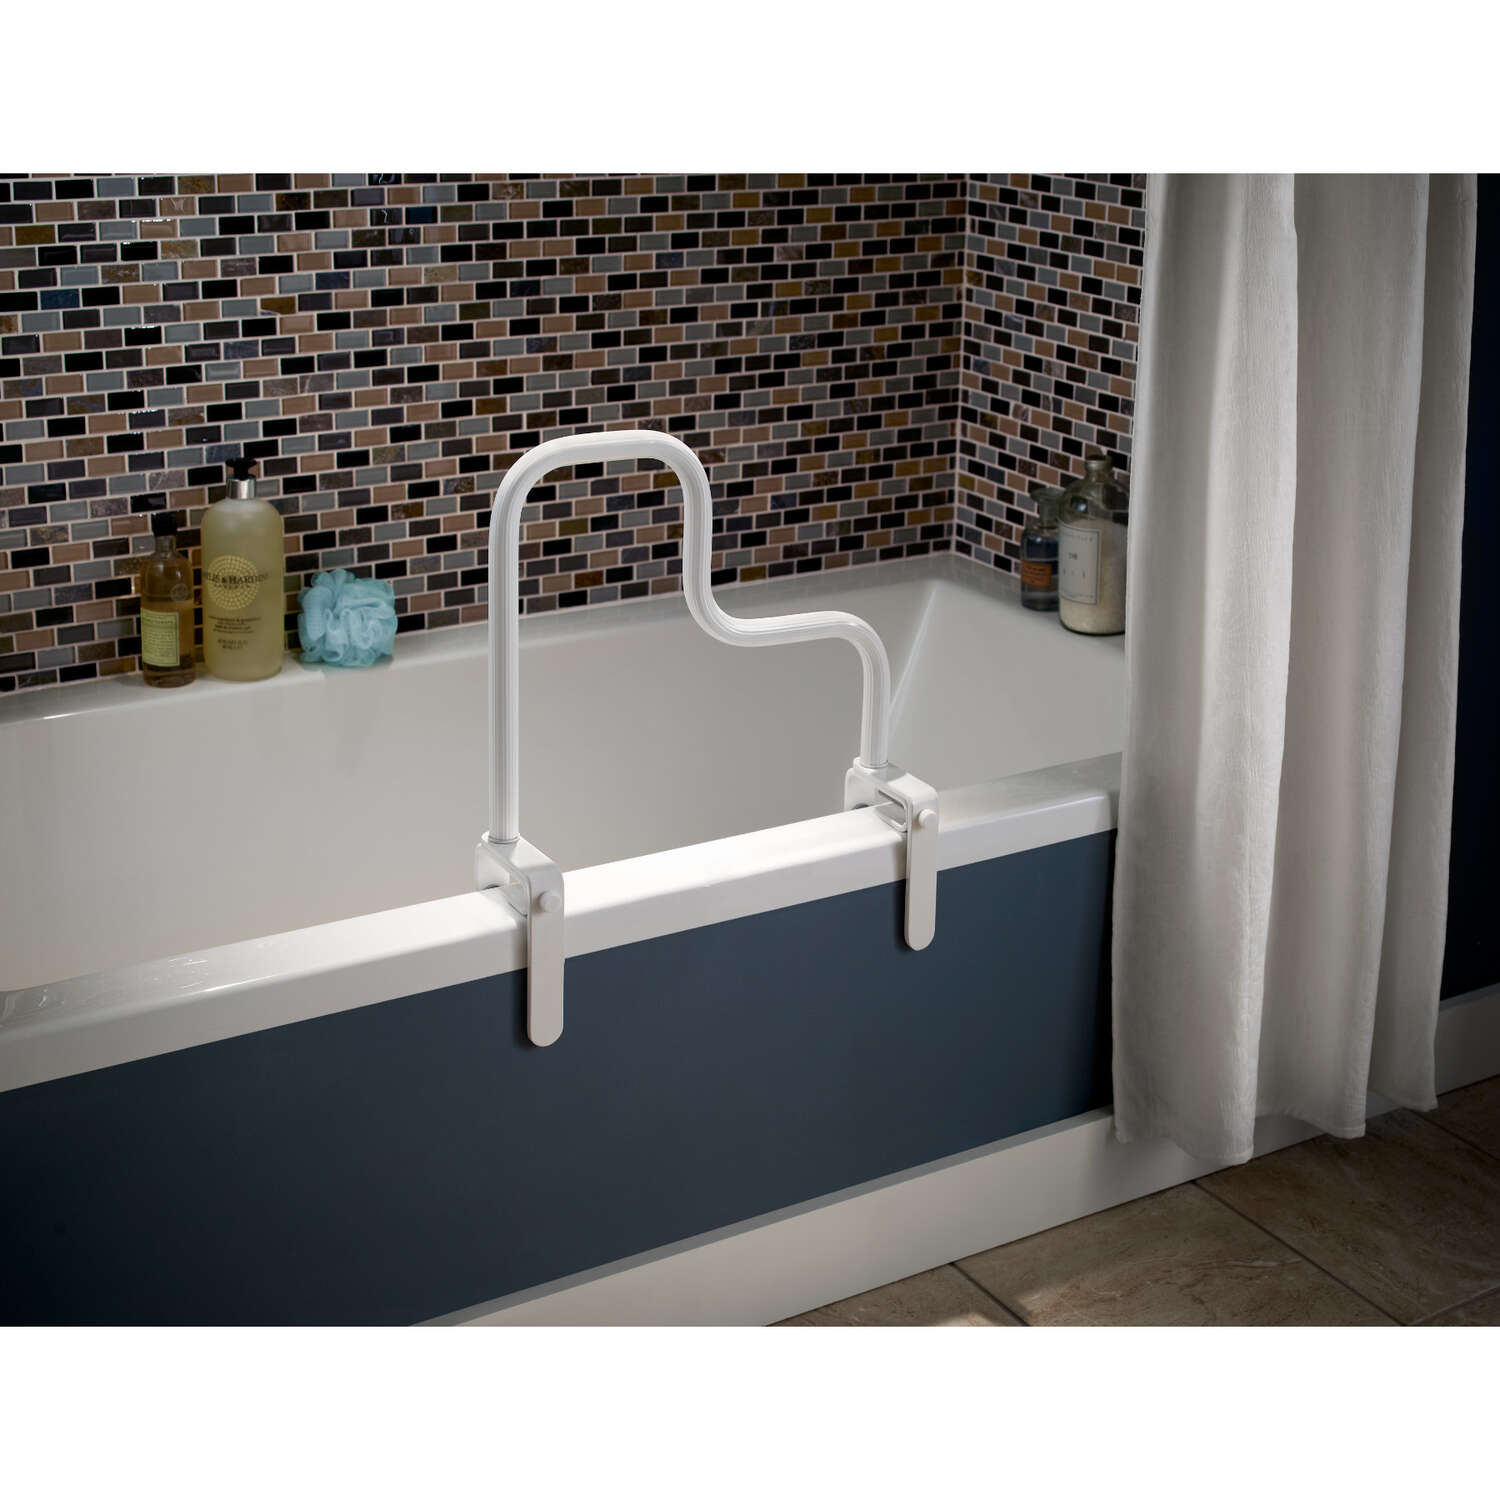 Delta  White  Tub Safety Bar  Steel  14-1/2 in. H x 15-1/4 in. L